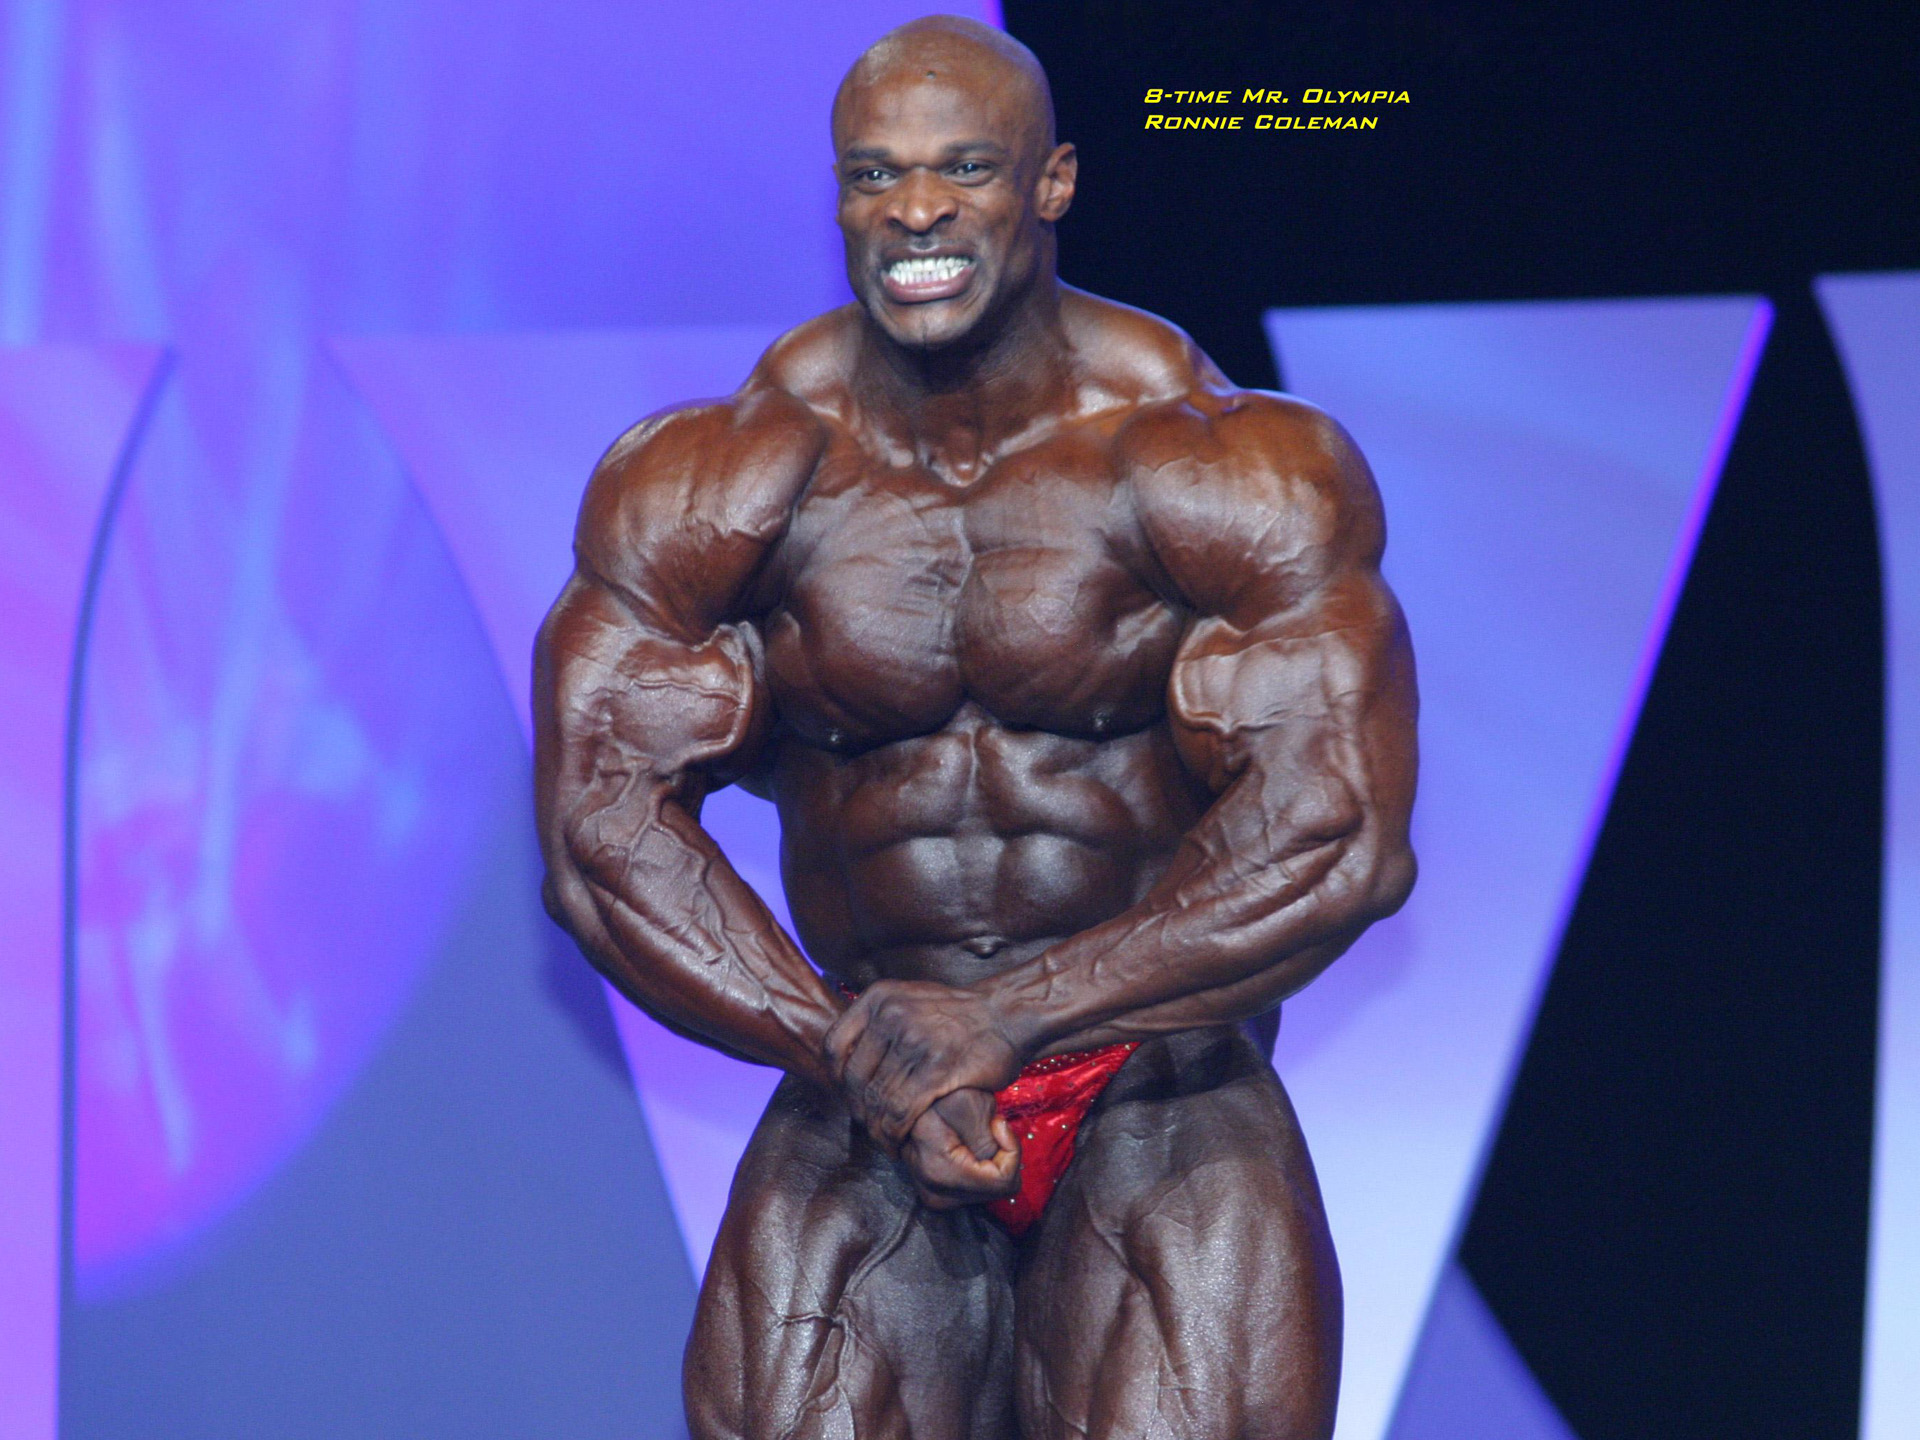 Ronnie Coleman photo #79762